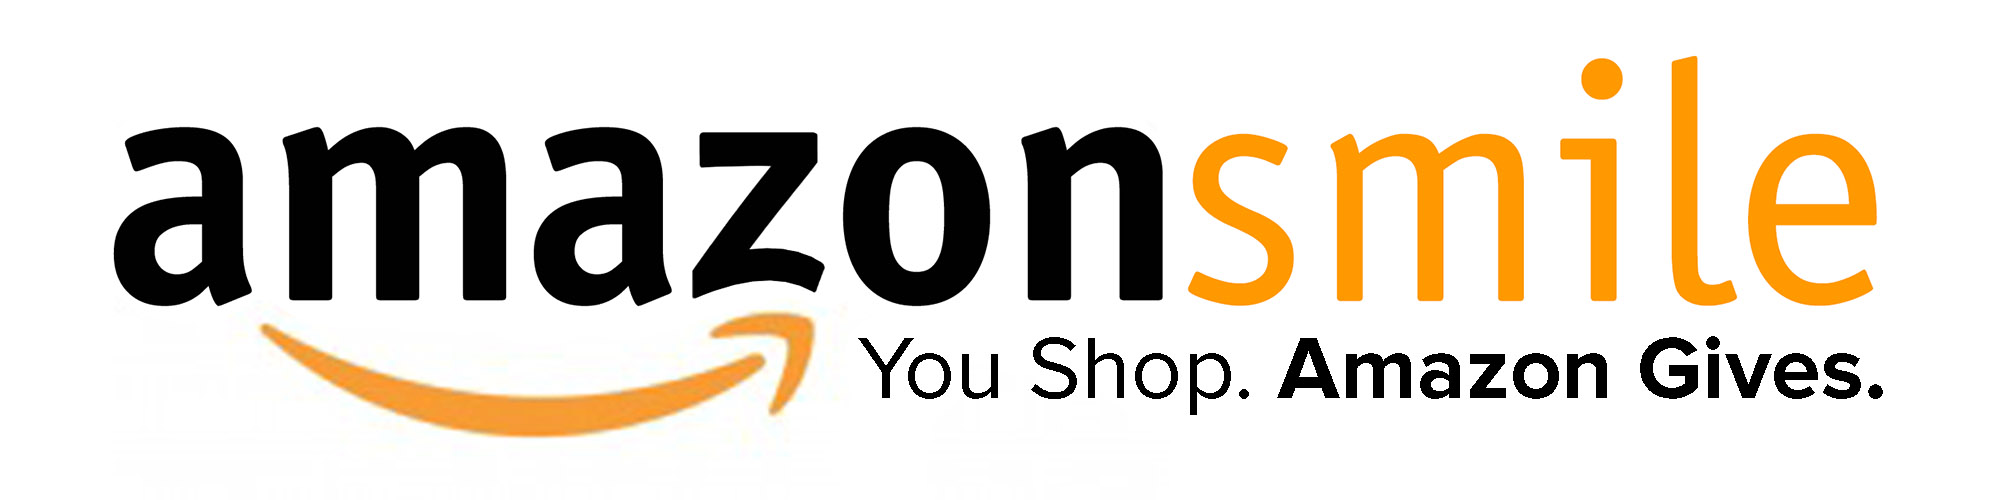 Spende mit Amazon Smile